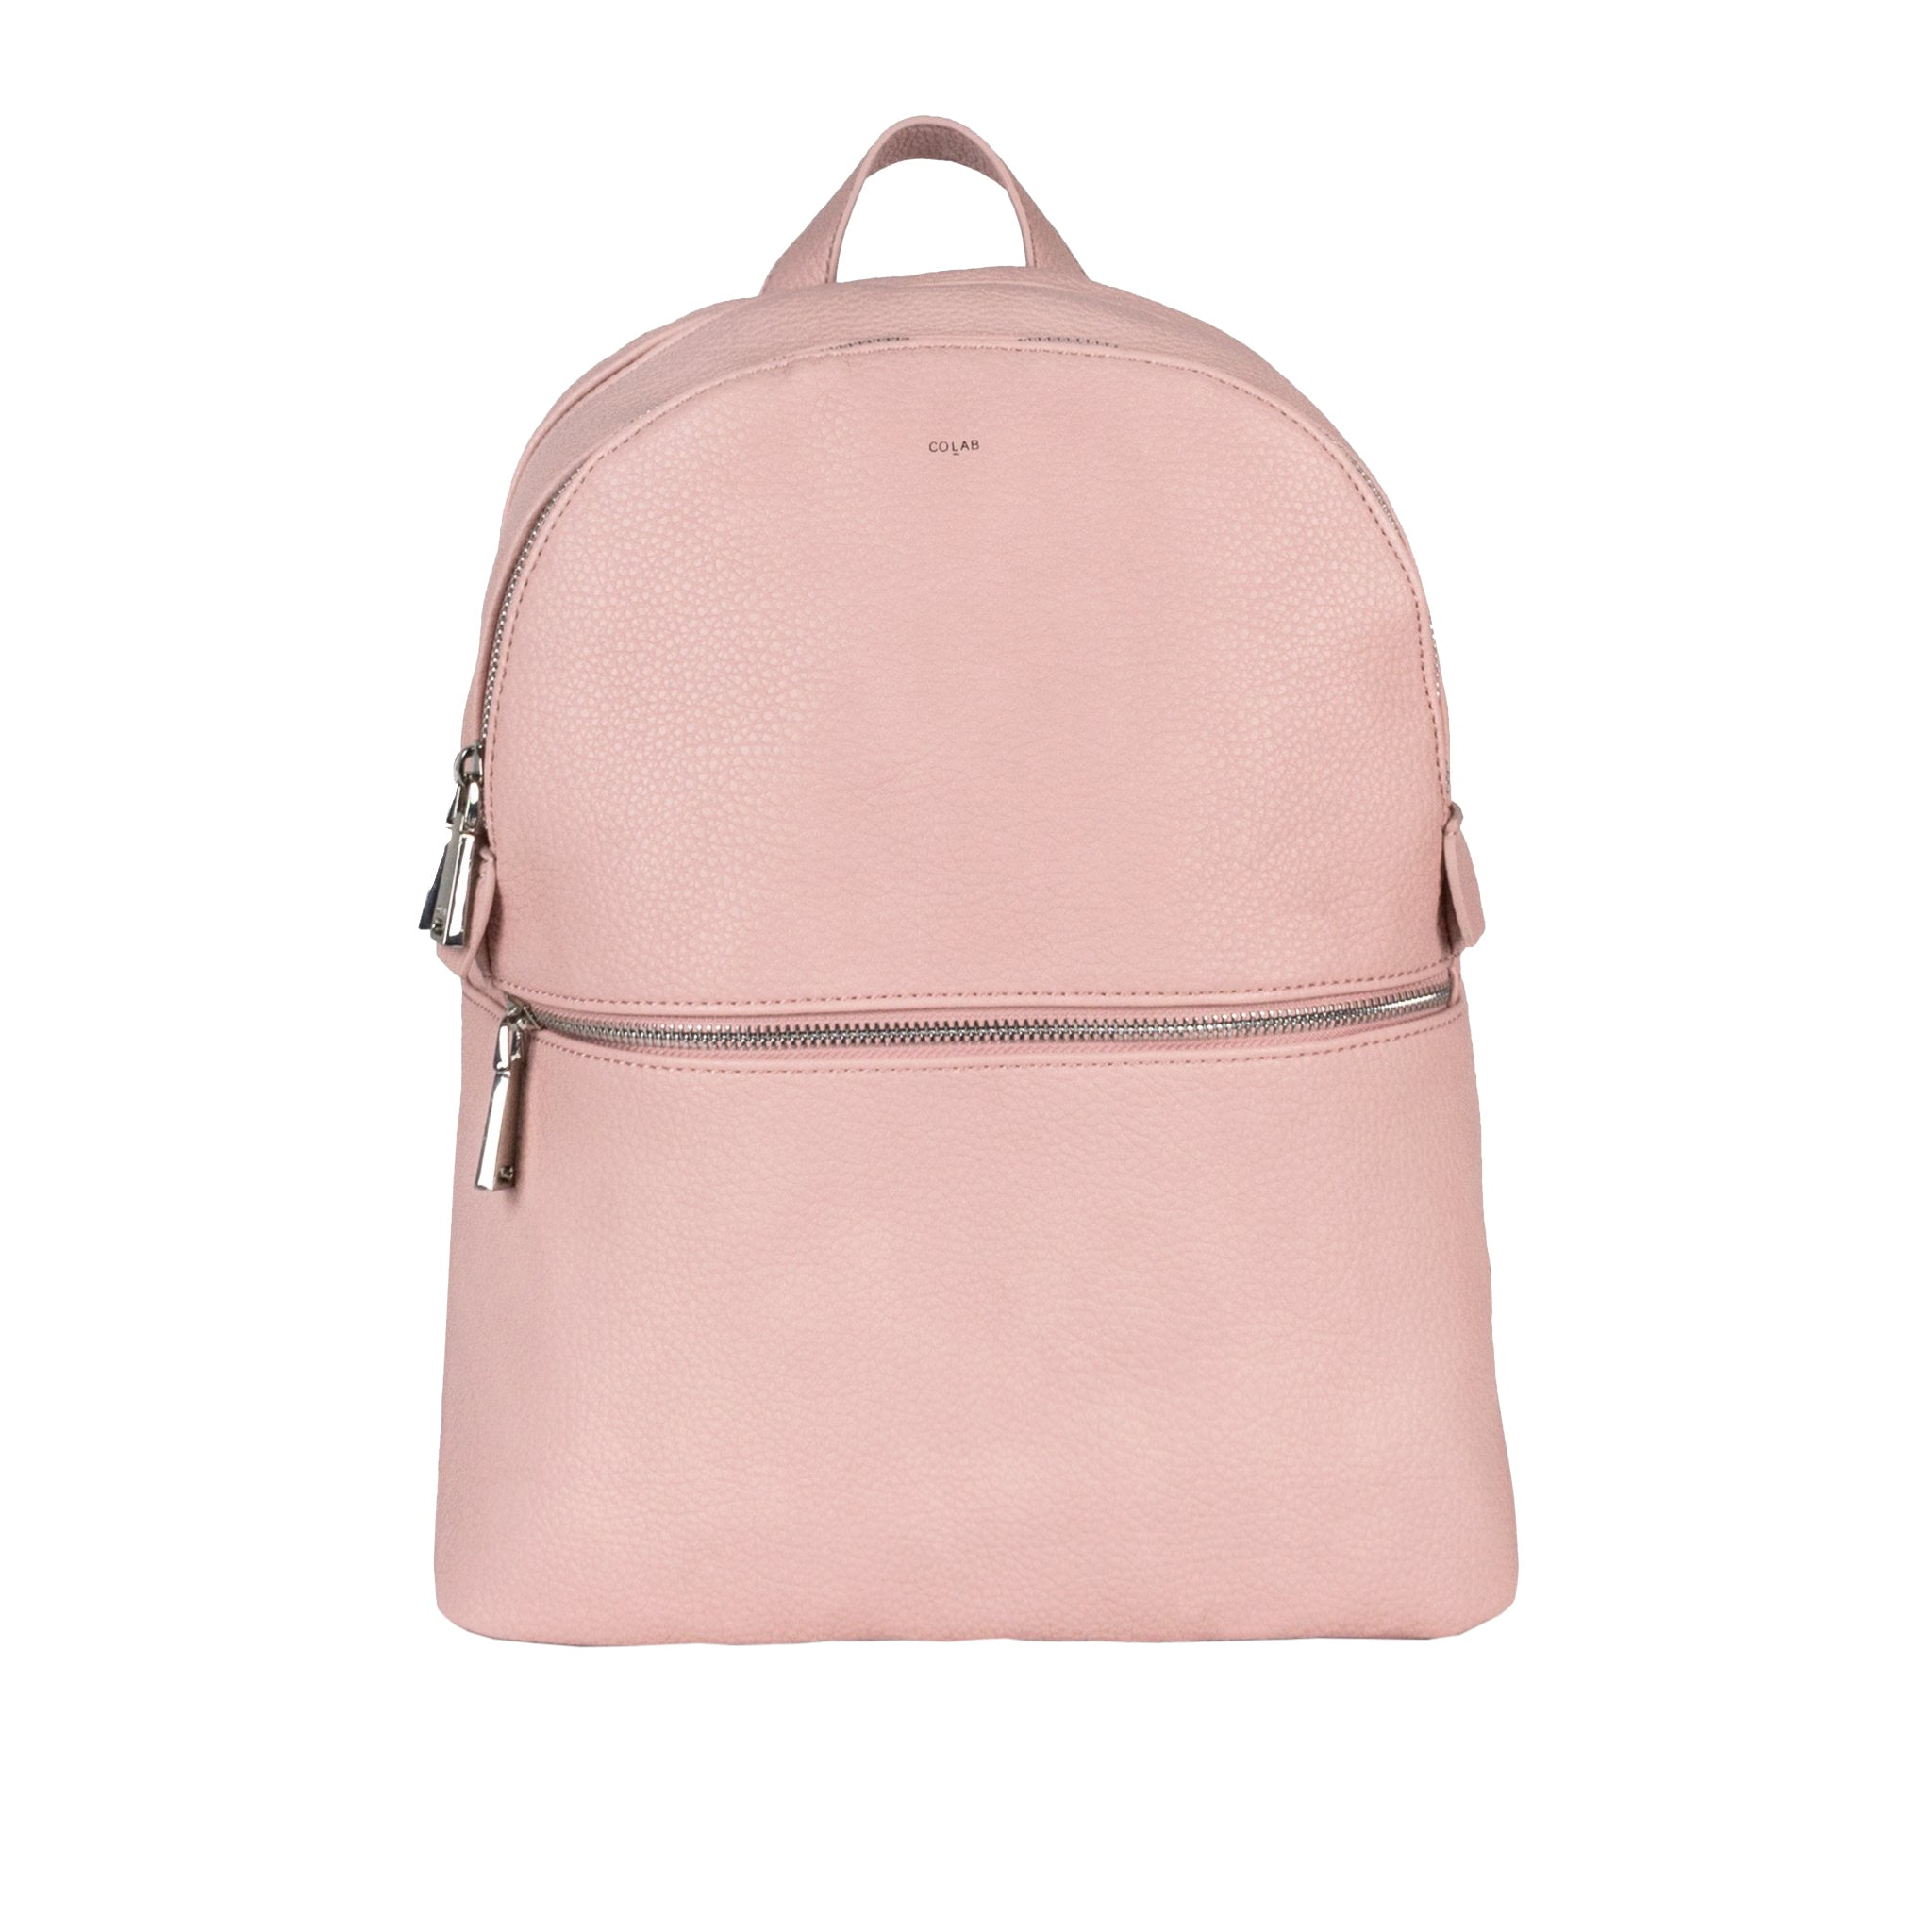 Co-Lab Pebble Hush Backpack - Cotton Candy